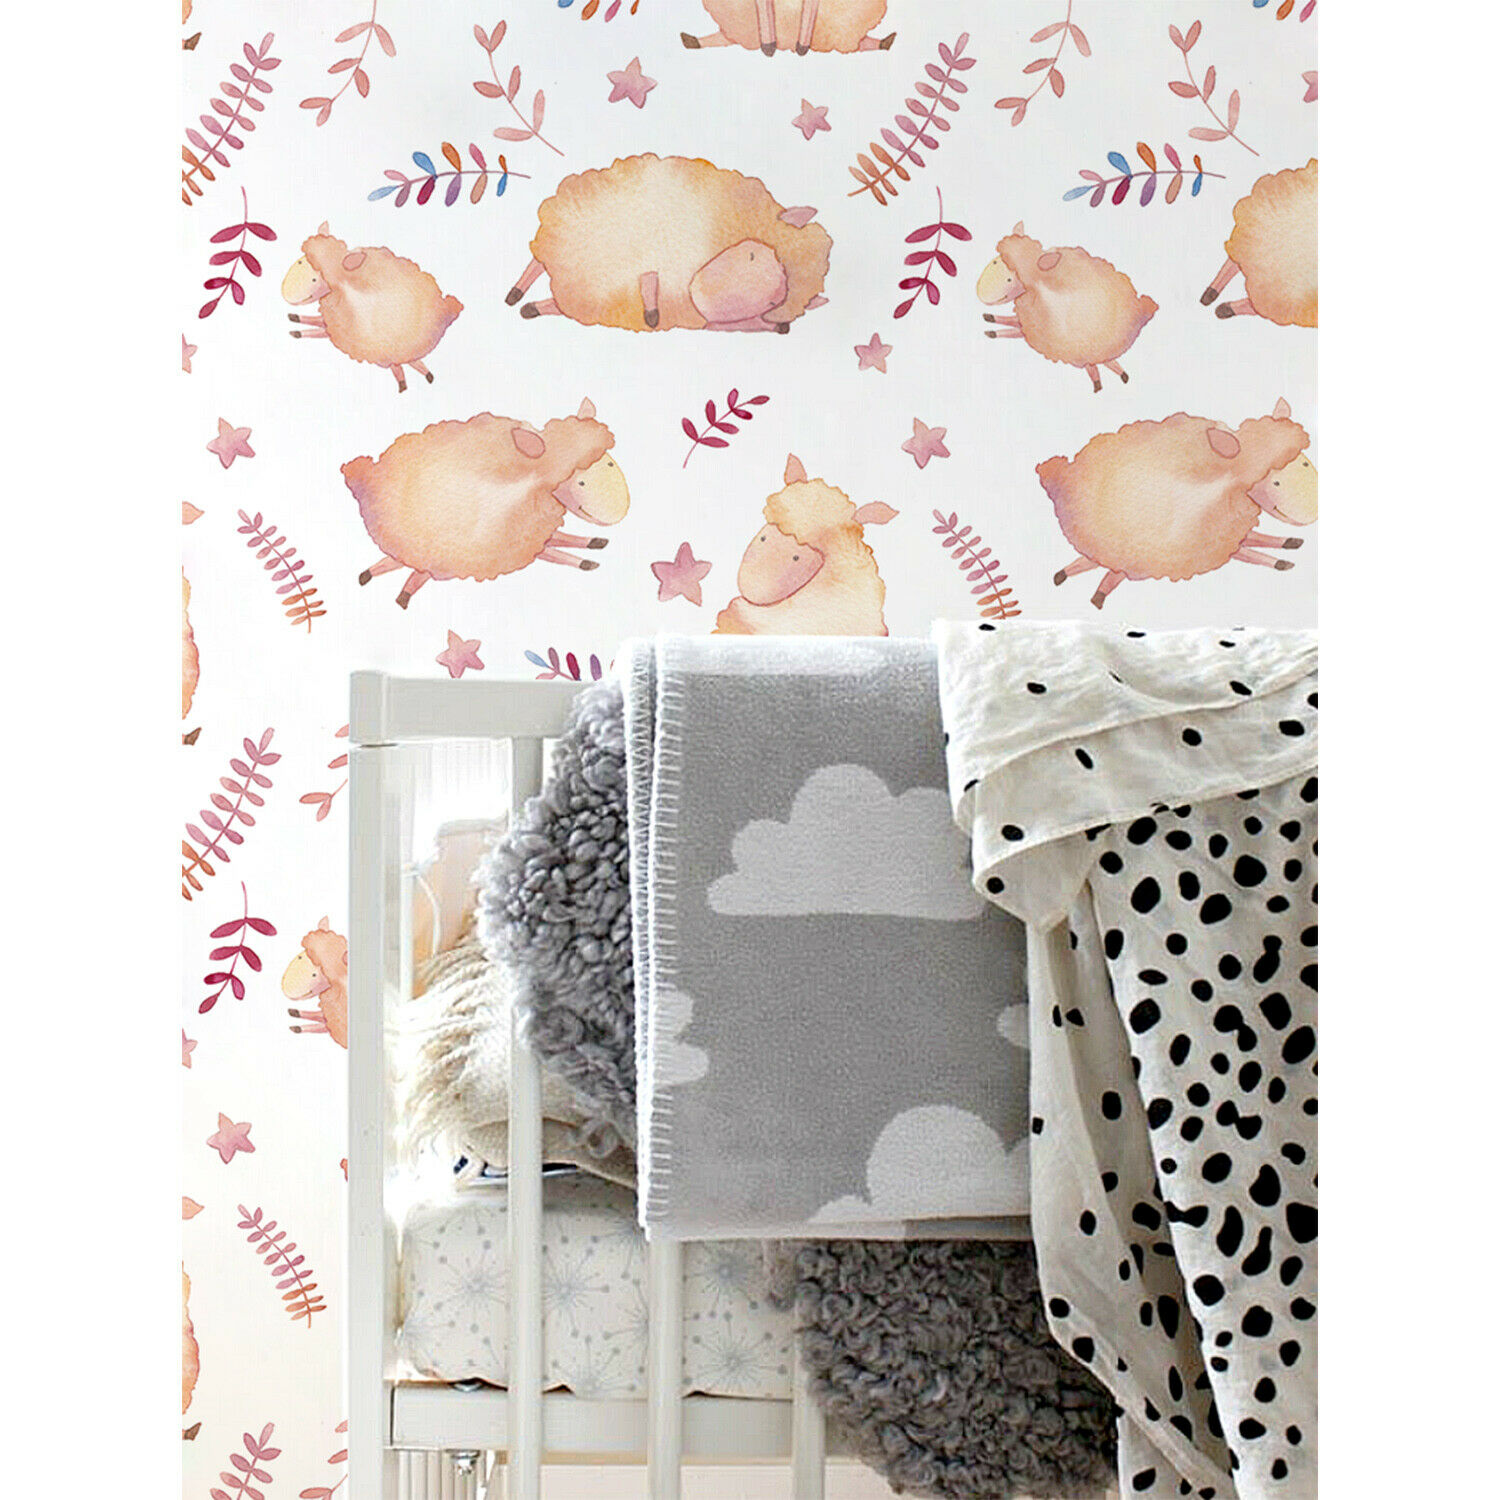 Removable Wallpaper adhesive Cute sheeps Watercolor wall murals for nurseries